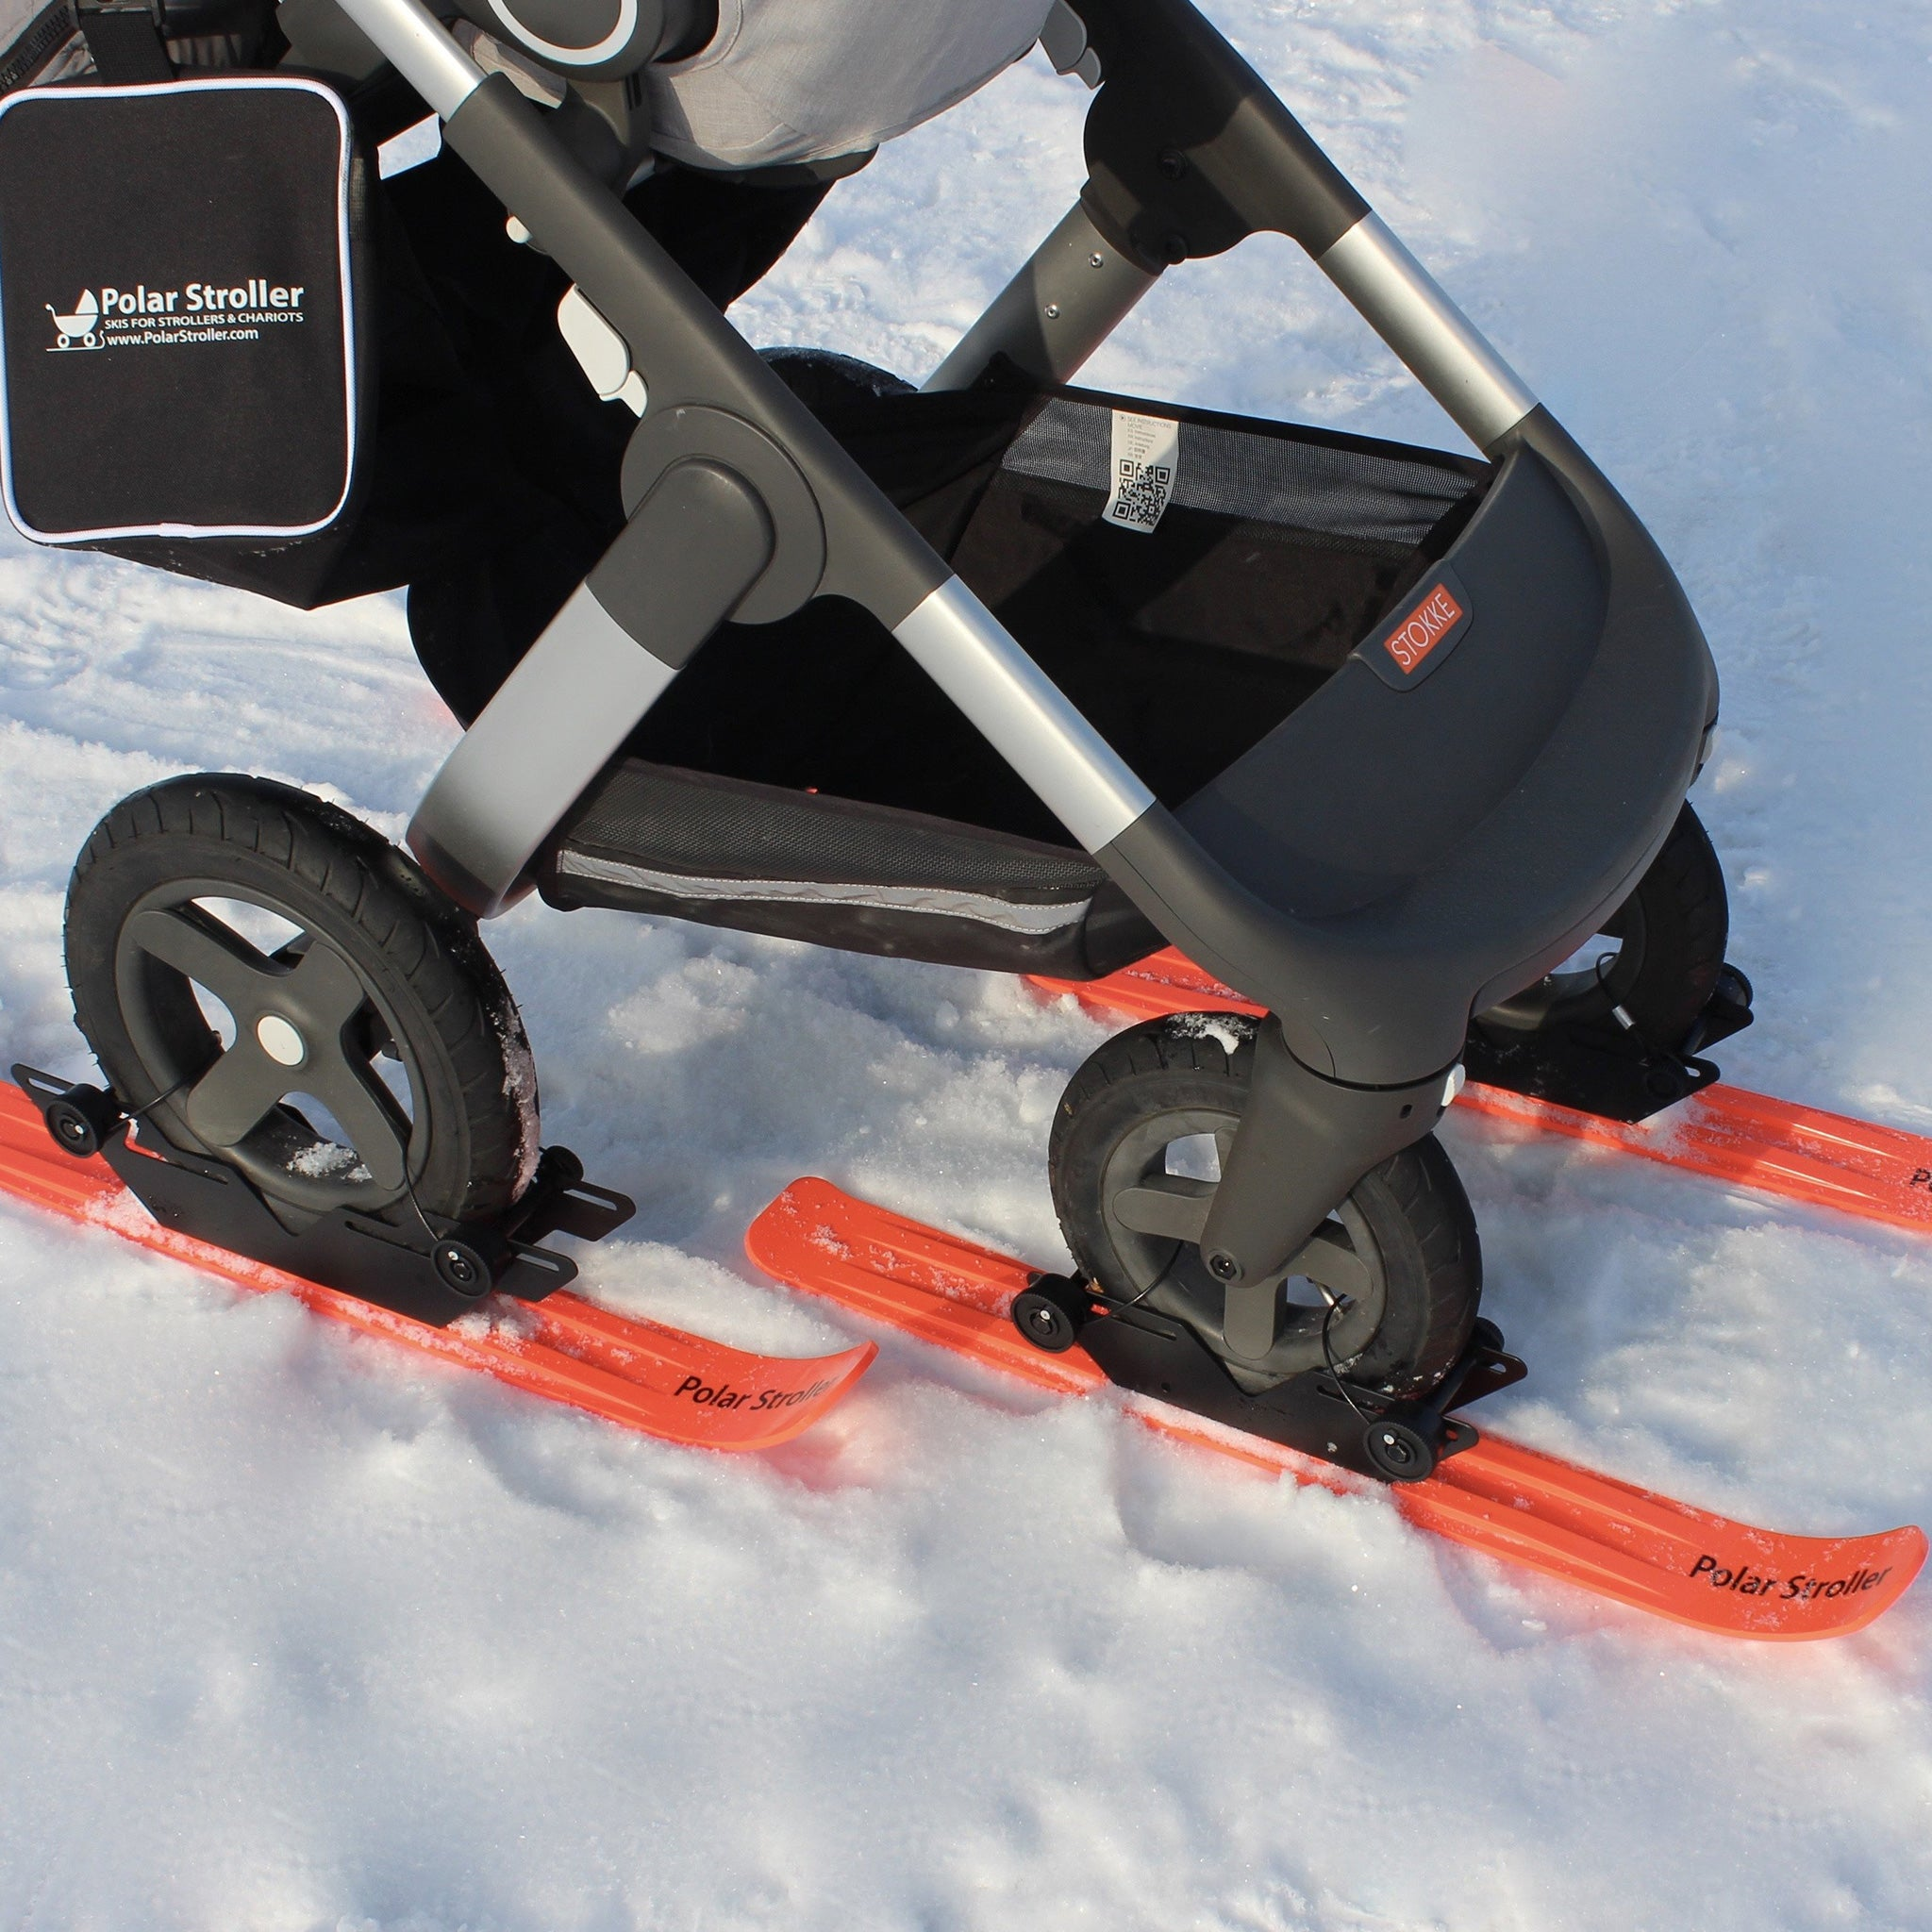 RX4 - 4-WHEEL POLAR SKI SET